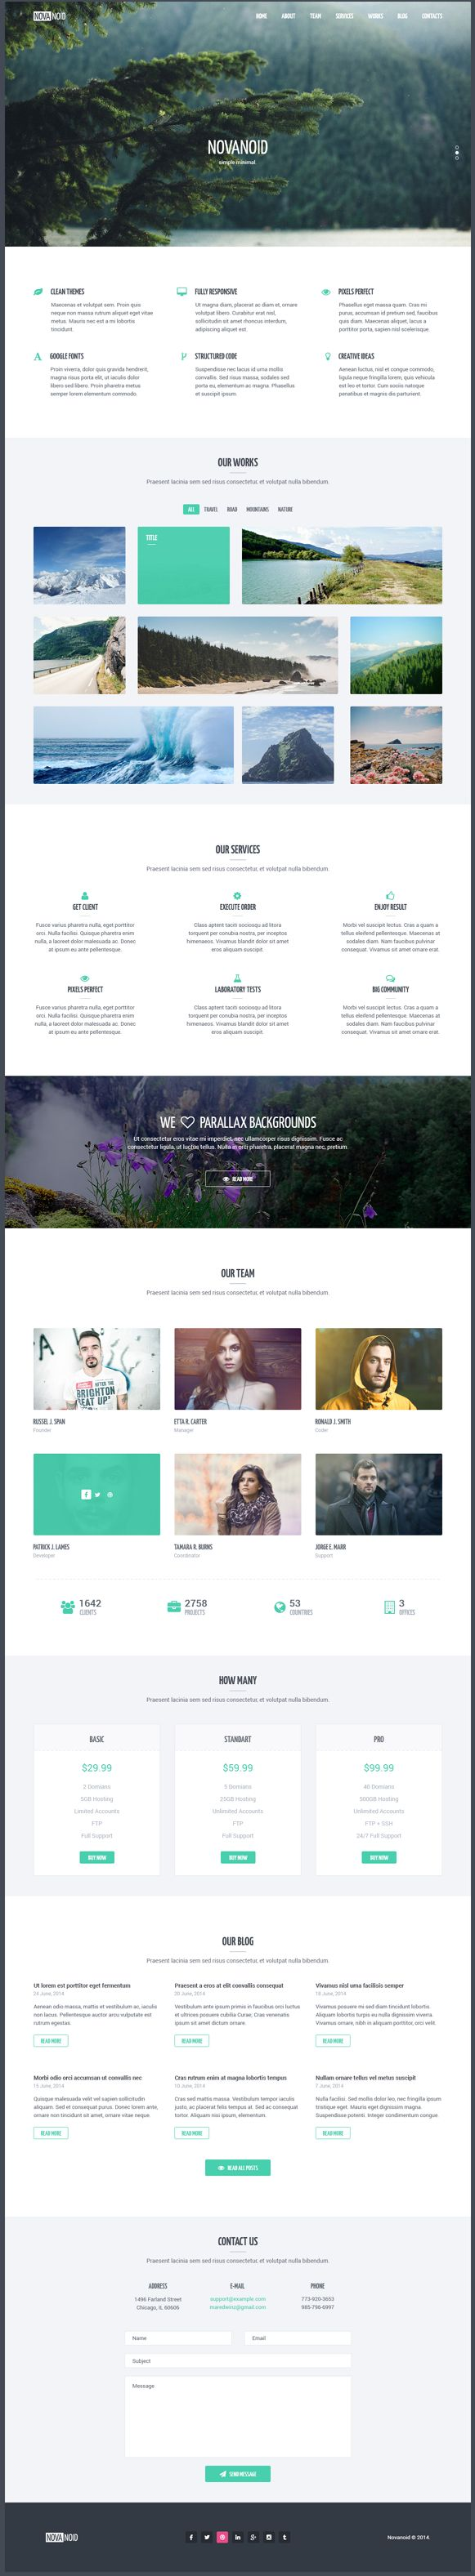 Novanoid – it's simple one page HTML template based on #Bootstrap 3. Package include 2 #HTML pages and 2 fully layered PSD files. Also #template has structured code.